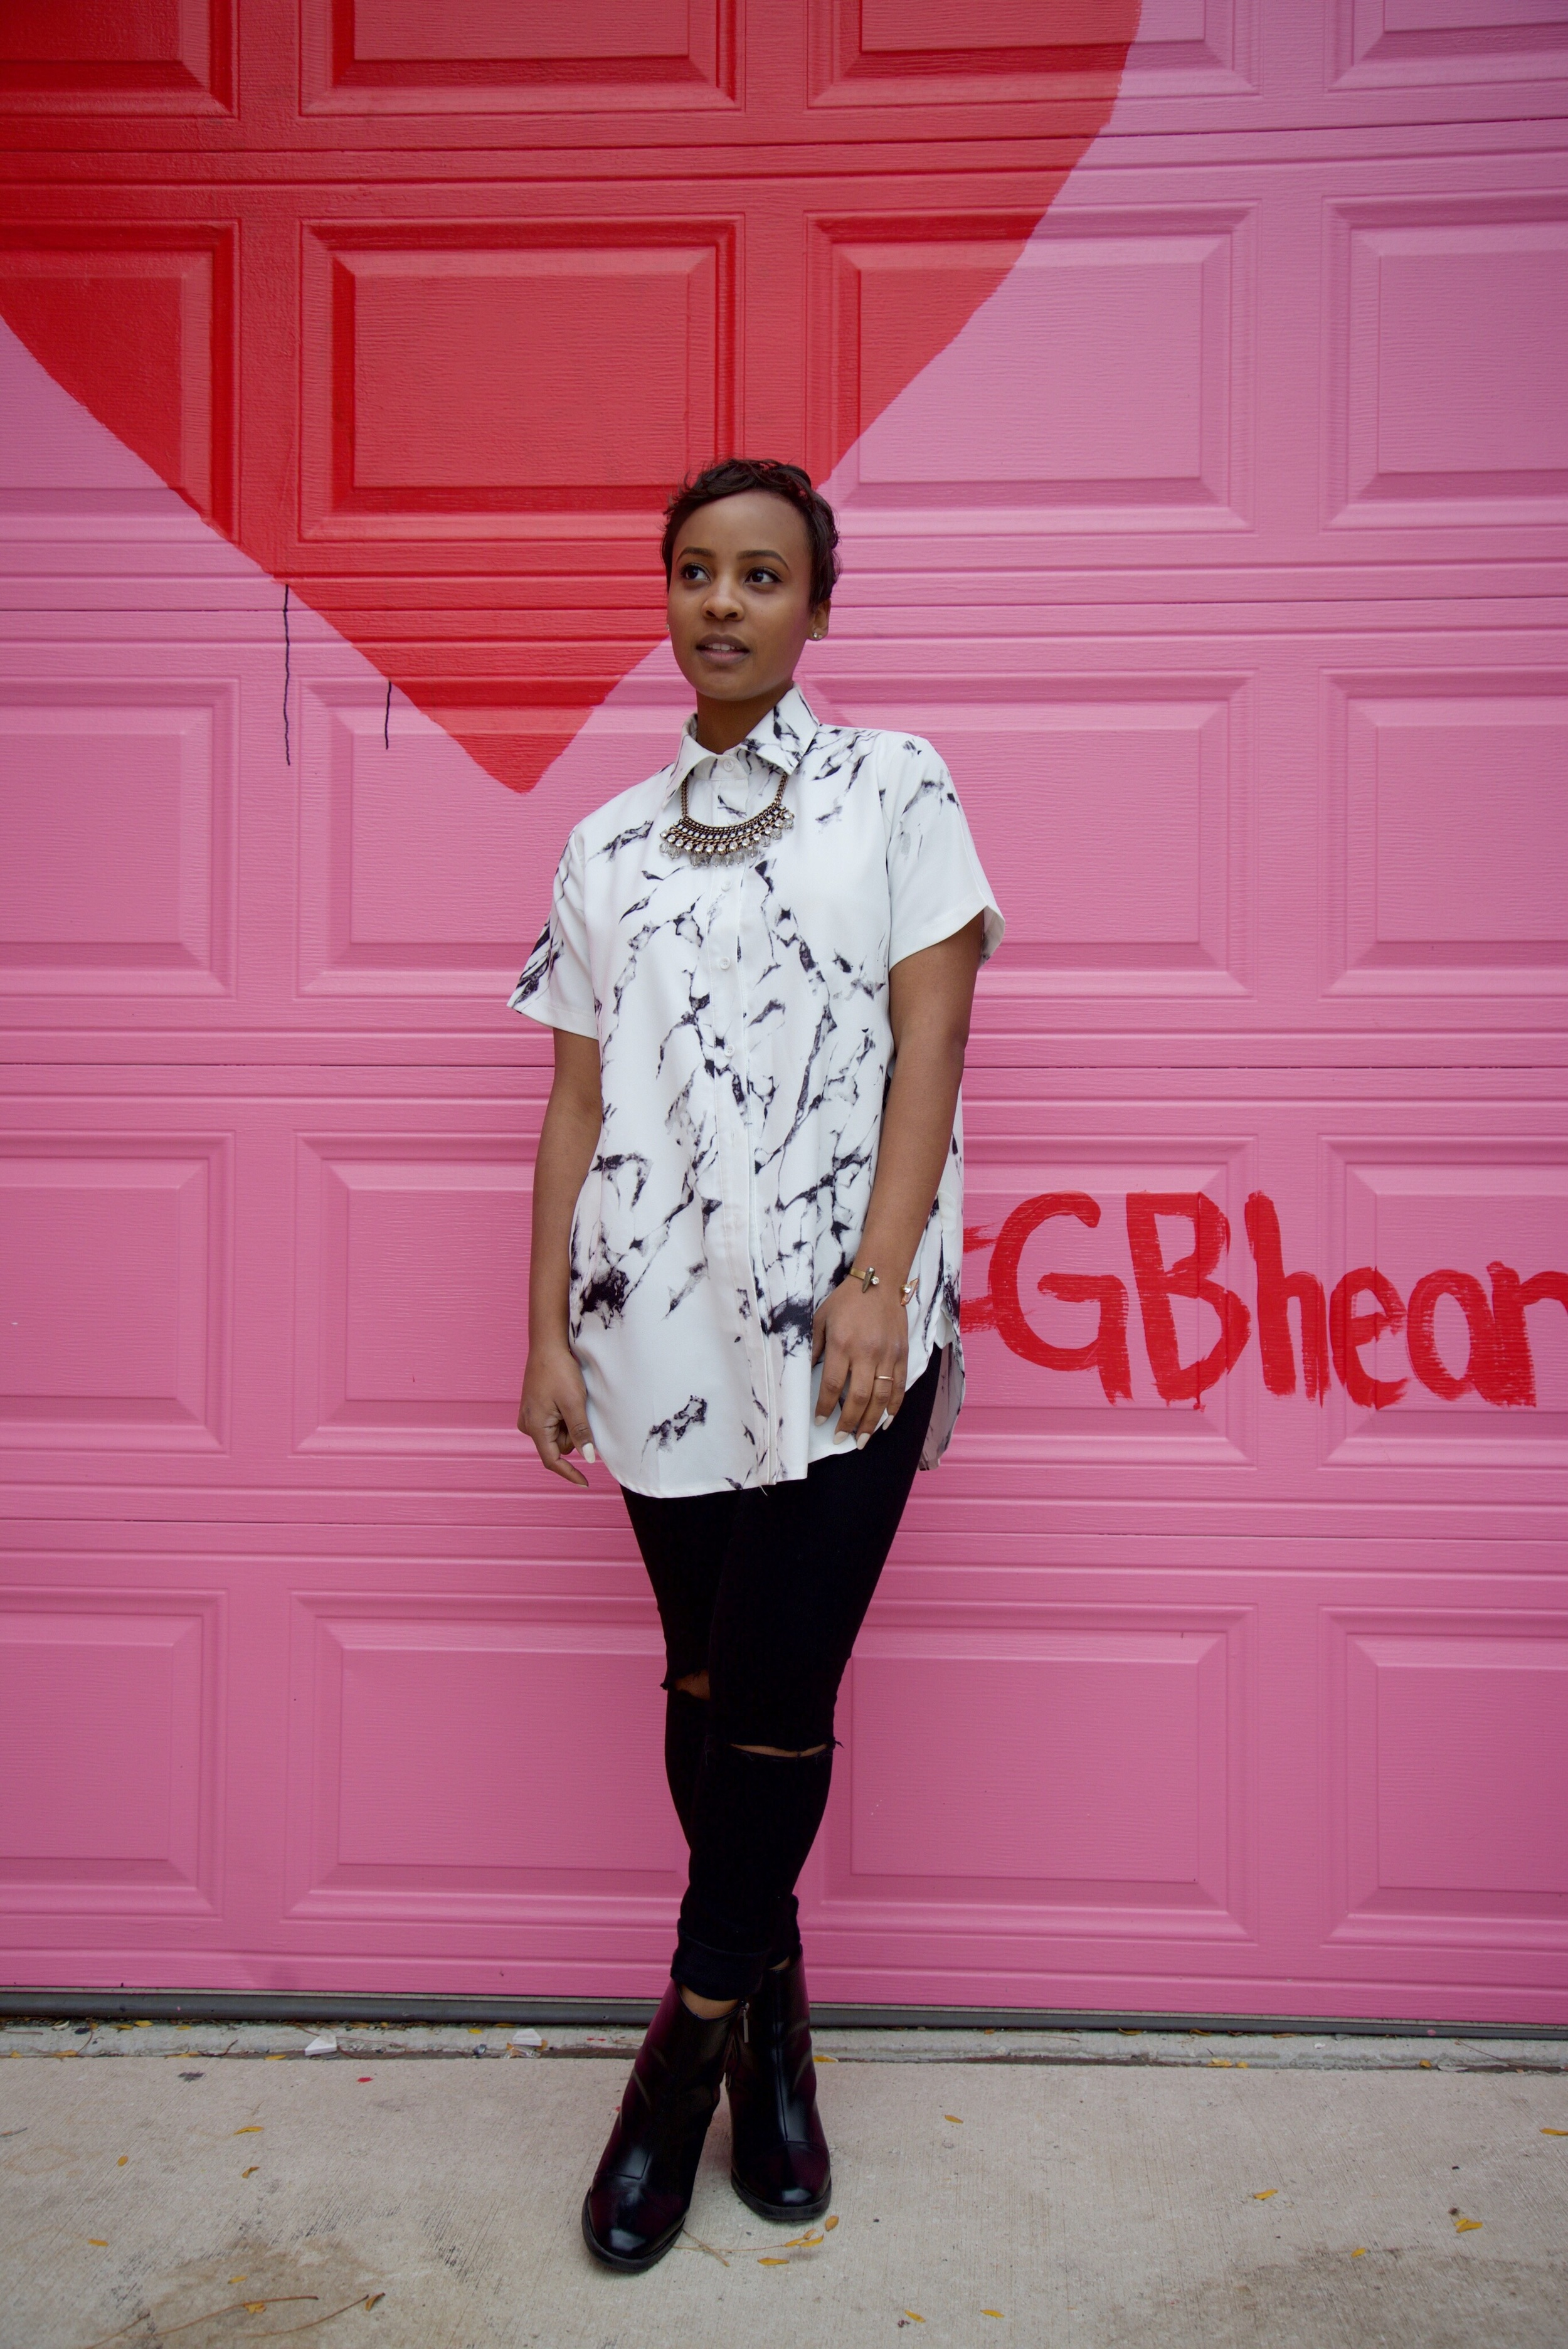 Shirt:  Young Hungry Free / Jeans:  Madewell  / Shoes: Zara ( similar here ) / Necklace: H&M